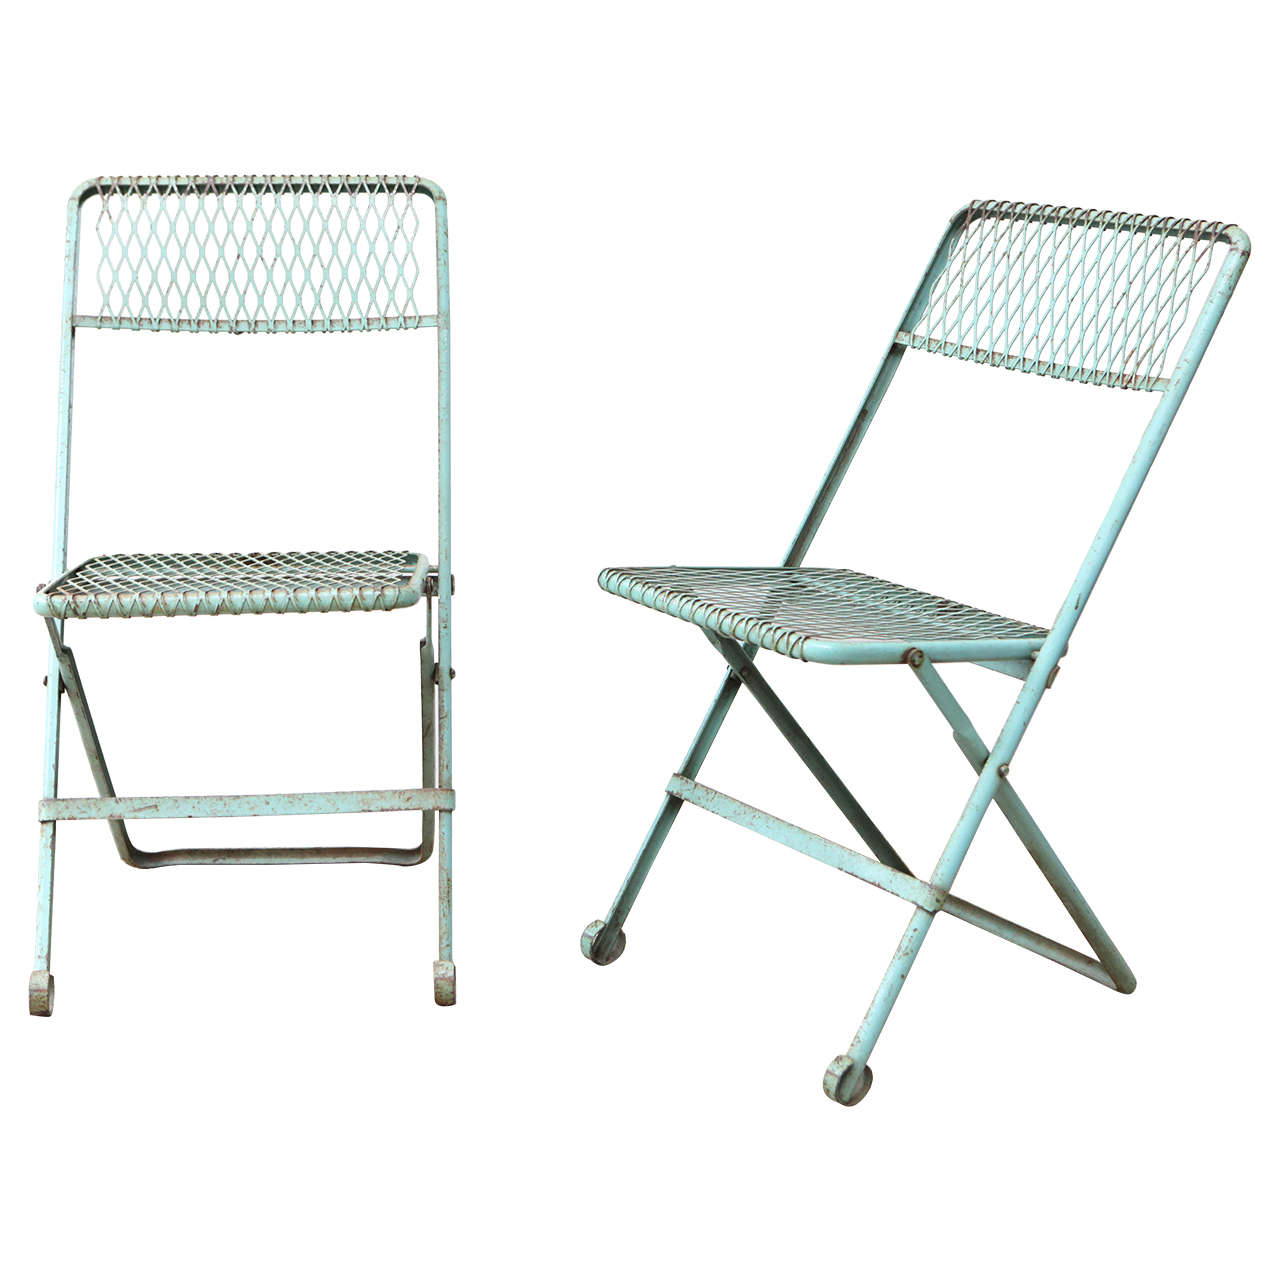 Pair of Blue Metal Folding Chairs at 1stdibs